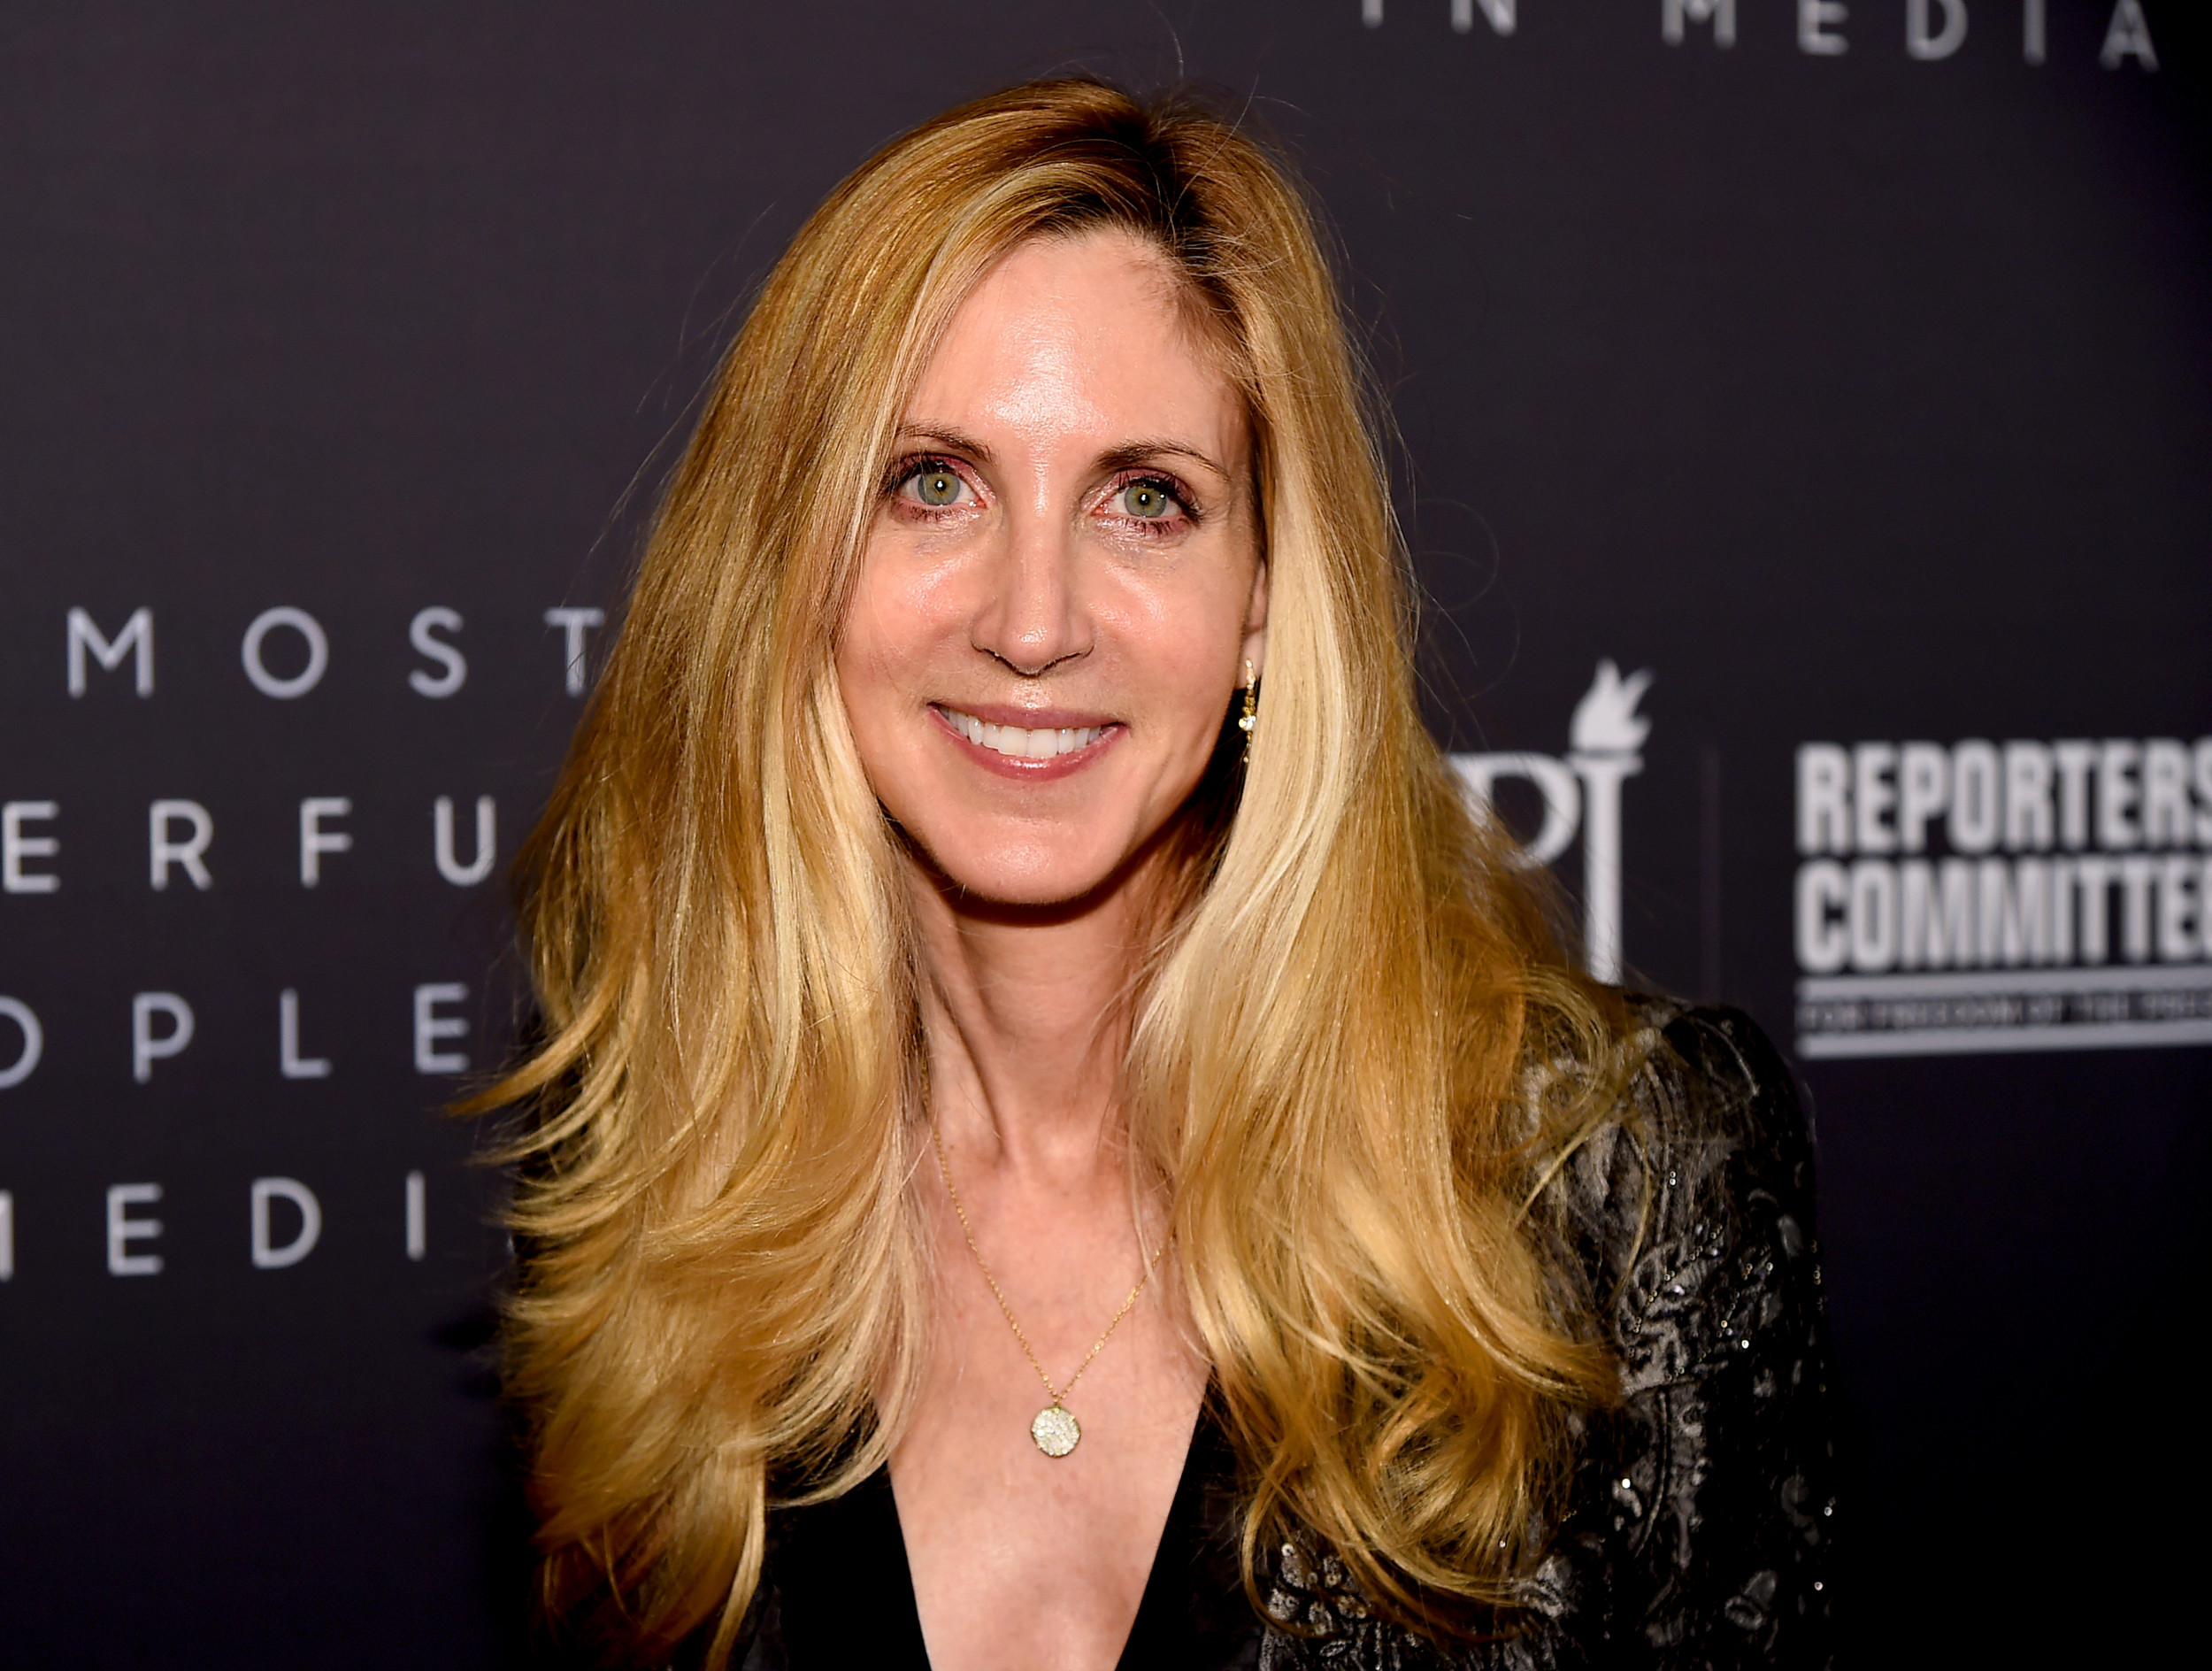 newsweek.com - Melissa Lemieux - Ann Coulter rails against college affirmative action, calls it 'institutionalized anti-white racism'